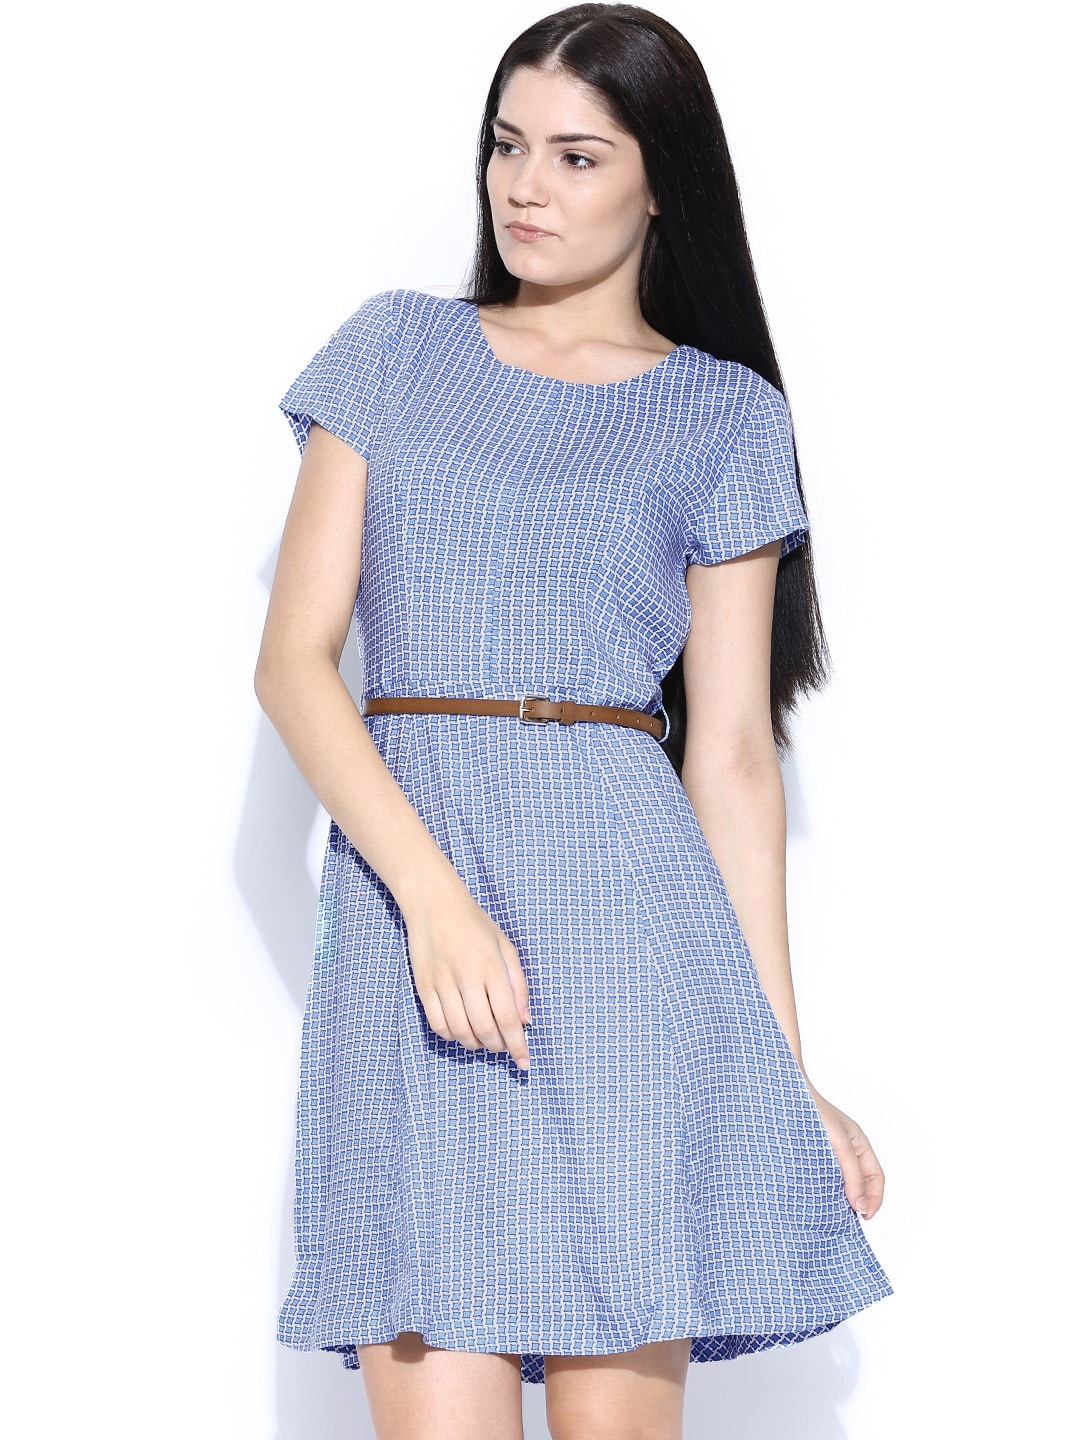 United Colors of Benetton Blue & Off-White Printed Fit & Flare Dress